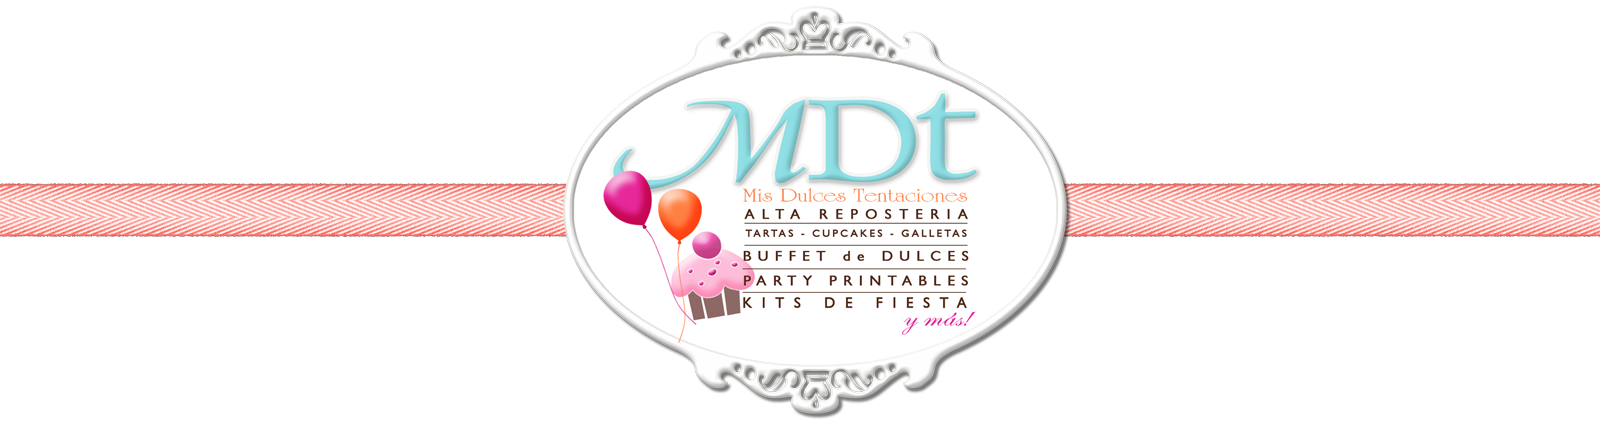 mis dulces tentaciones - tartas, galletas, cupcakes & buffet de dulces, party decorations